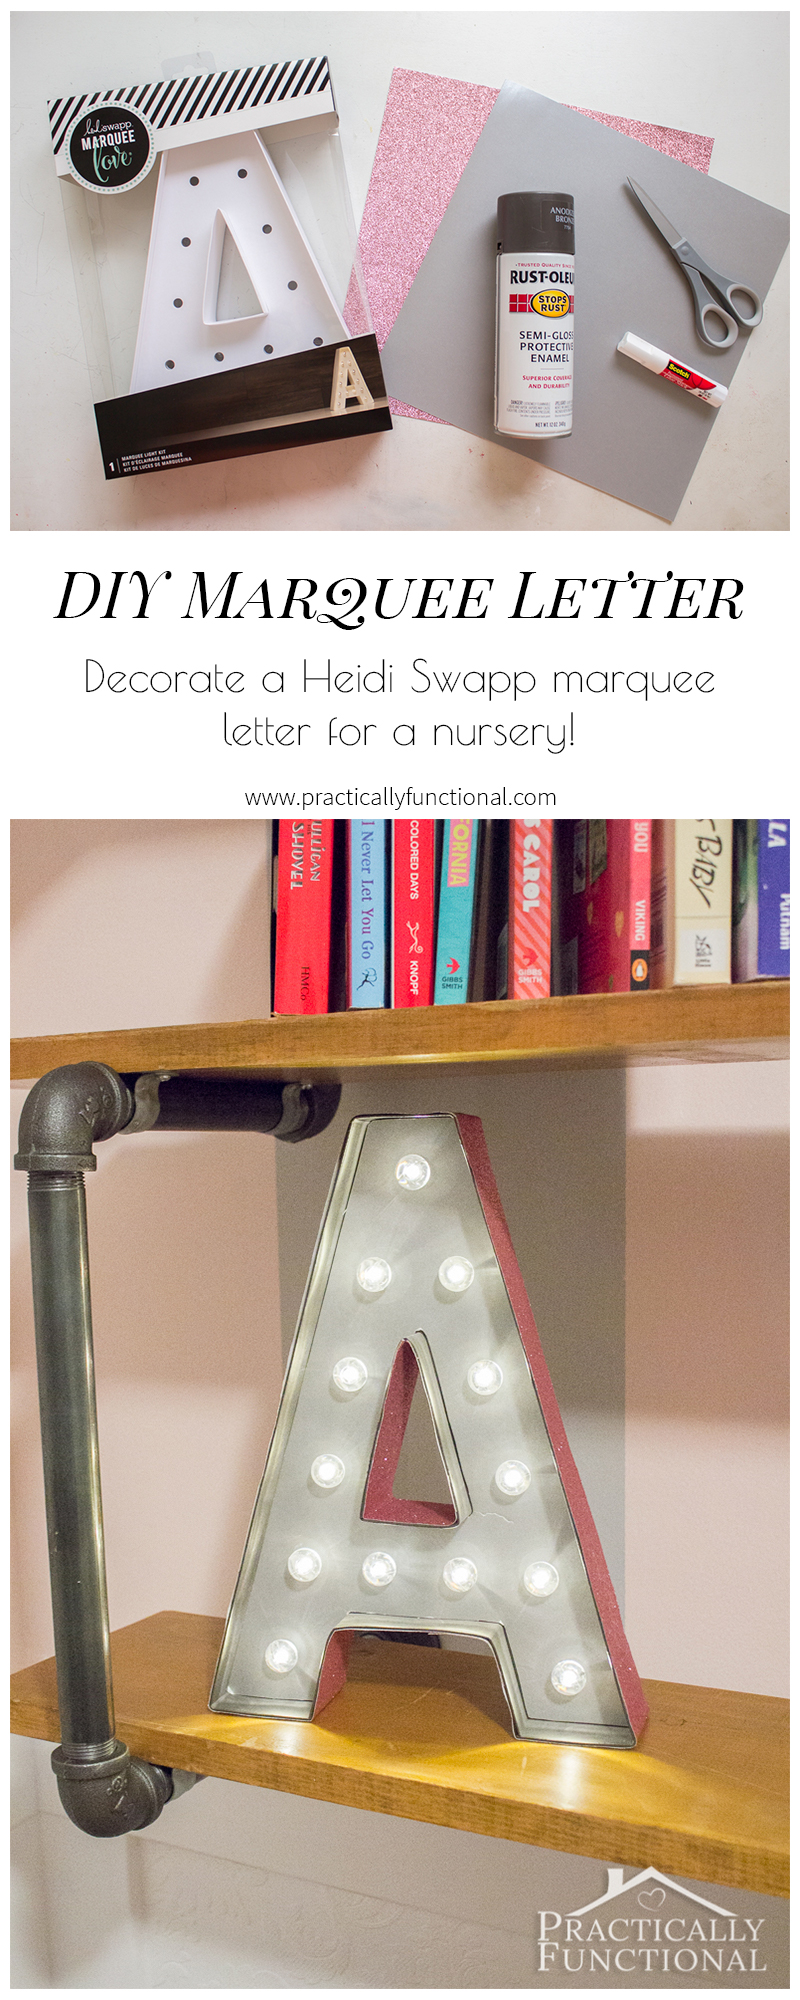 Make a super cute DIY marquee letter in minutes! Start with a Heidi Swapp marquee letter, add spray paint and scrapbook paper, and you're done!